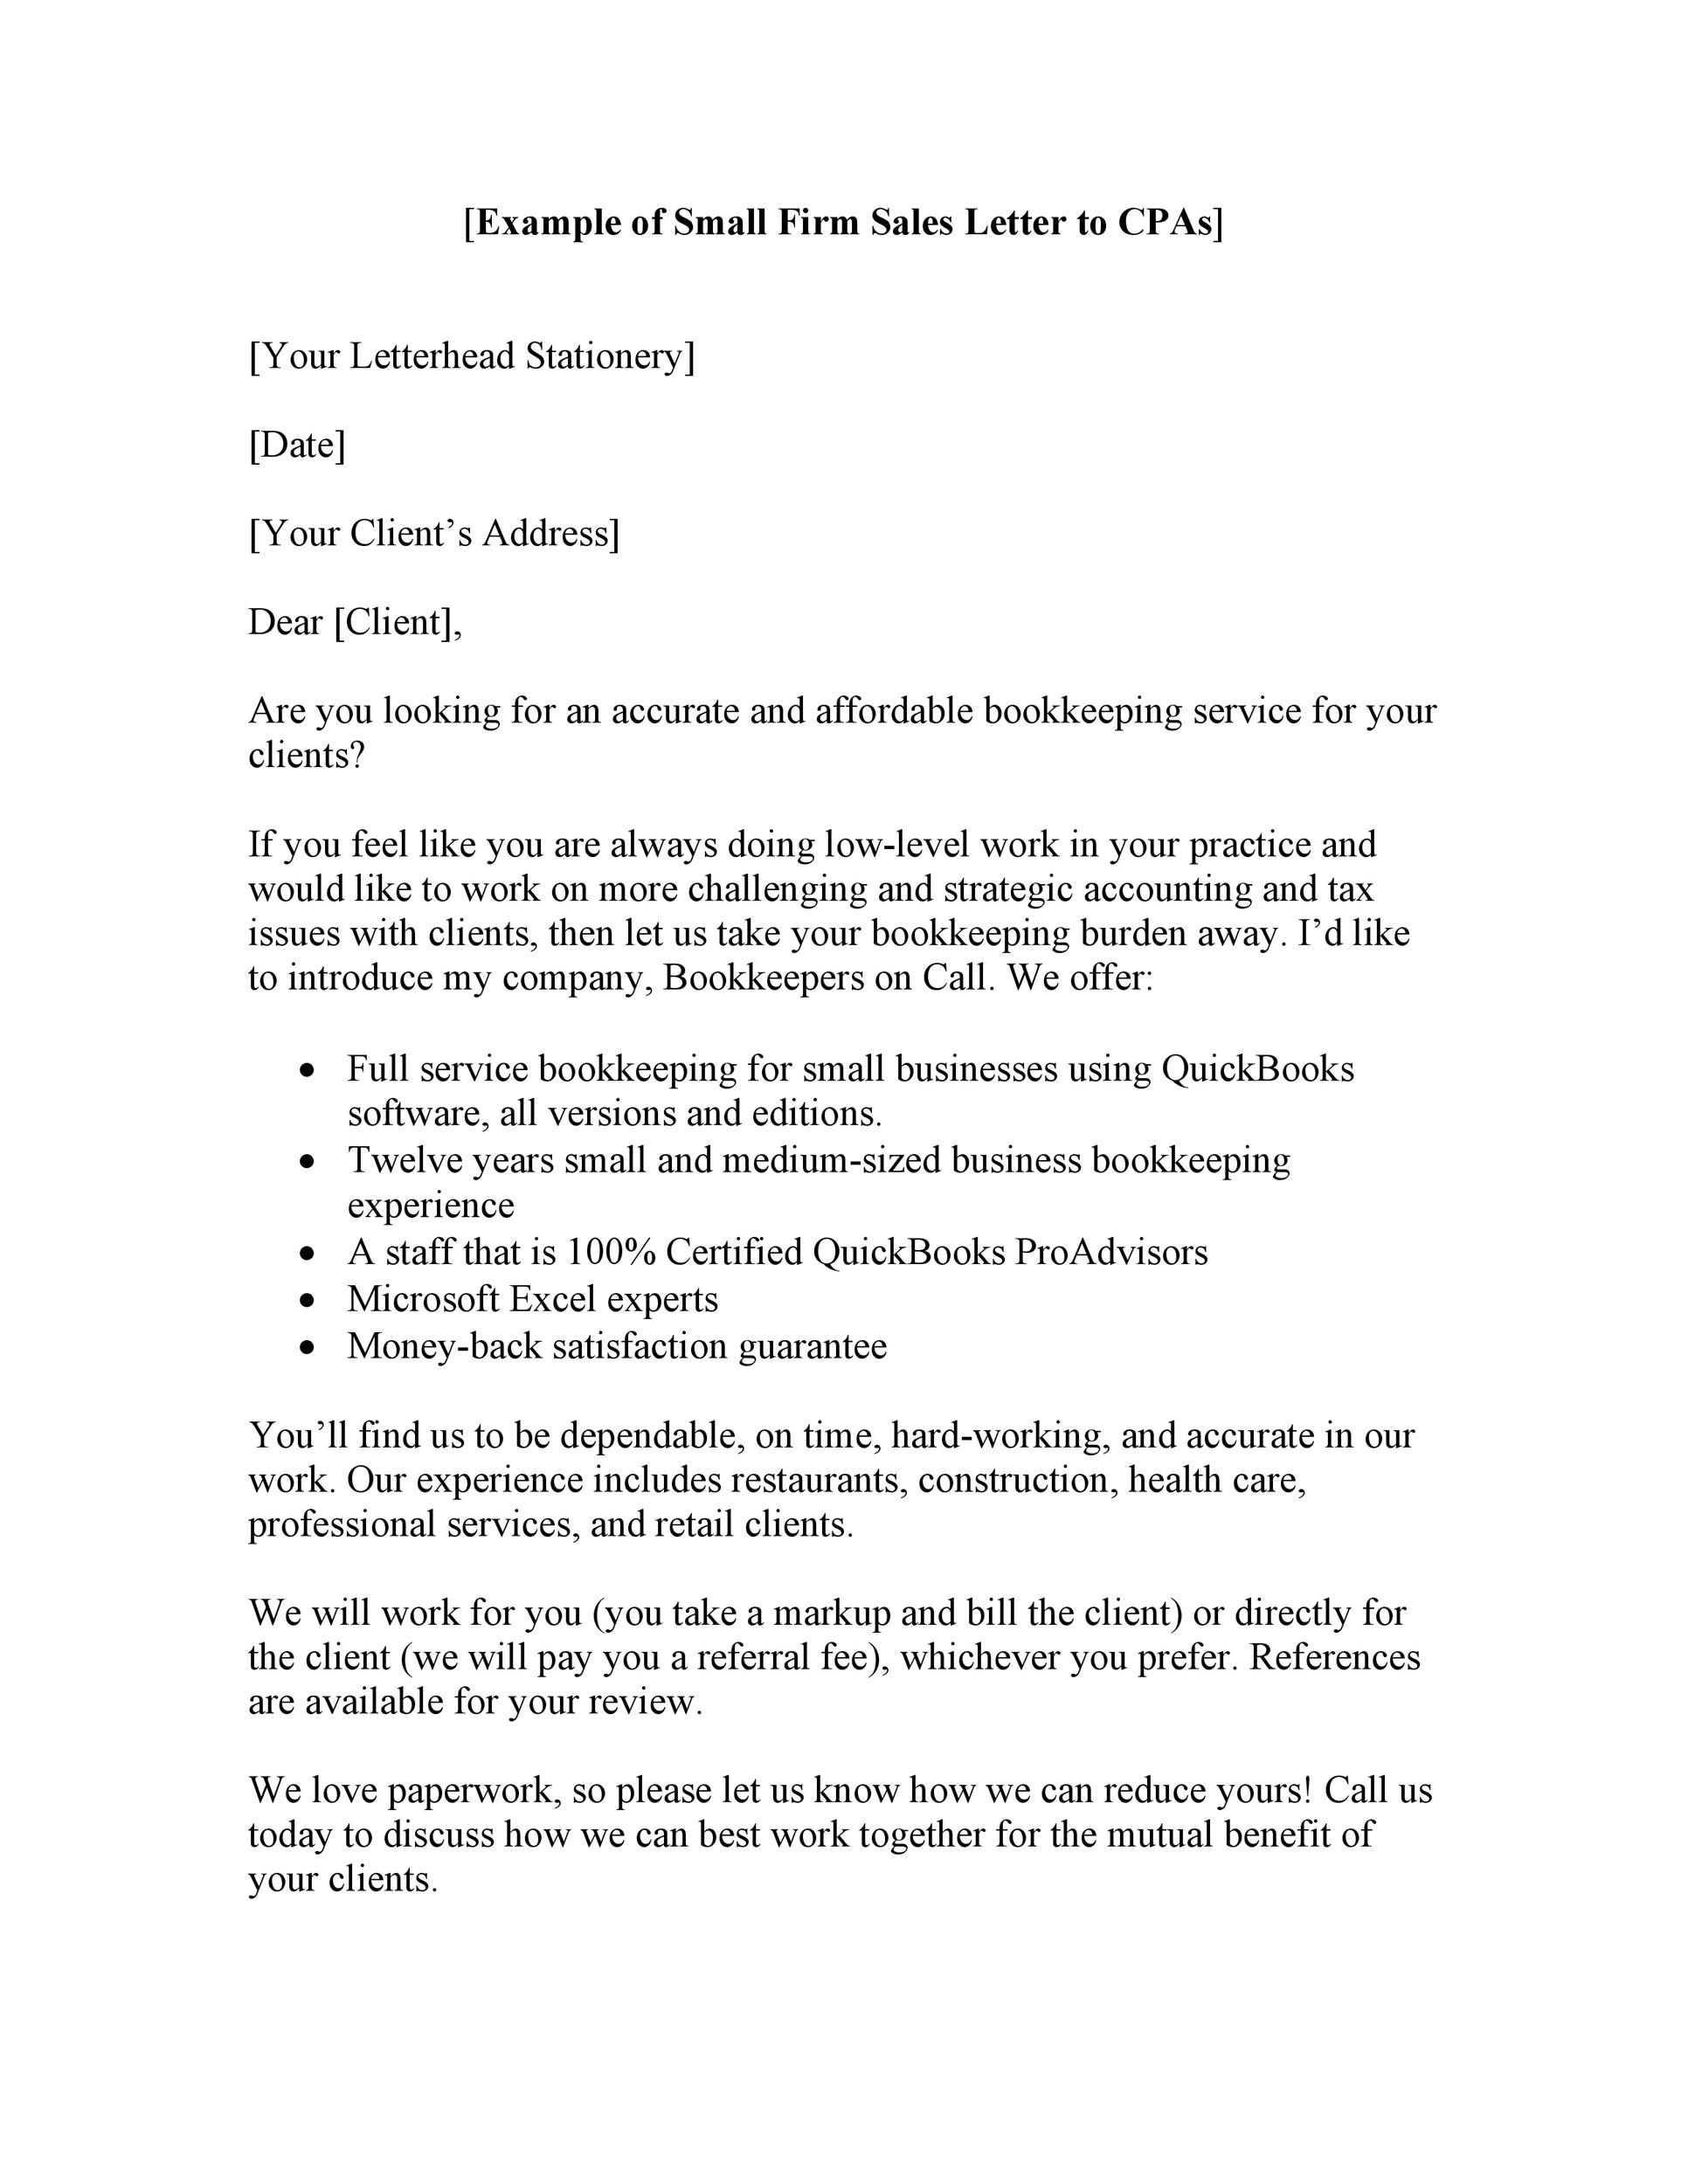 Sample Marketing Letter To Get Clients from templatelab.com